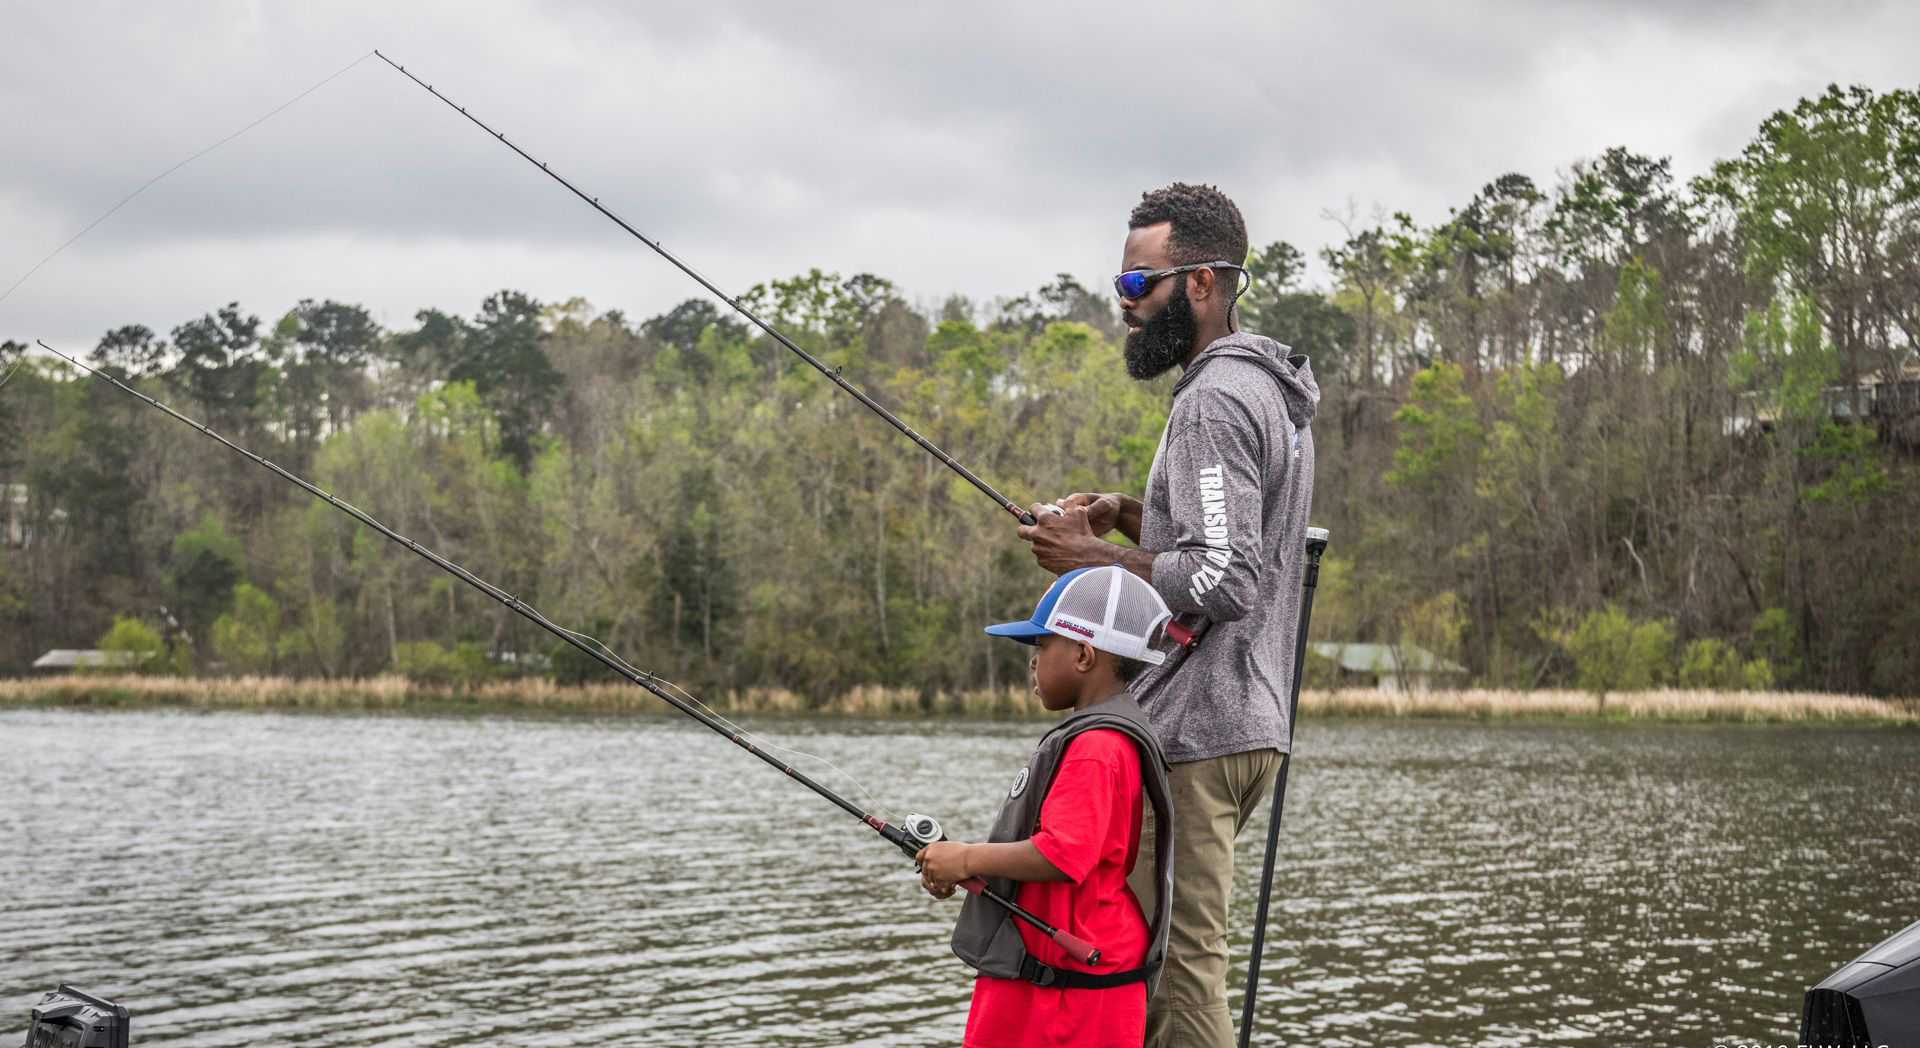 Latimer and Son Fishing